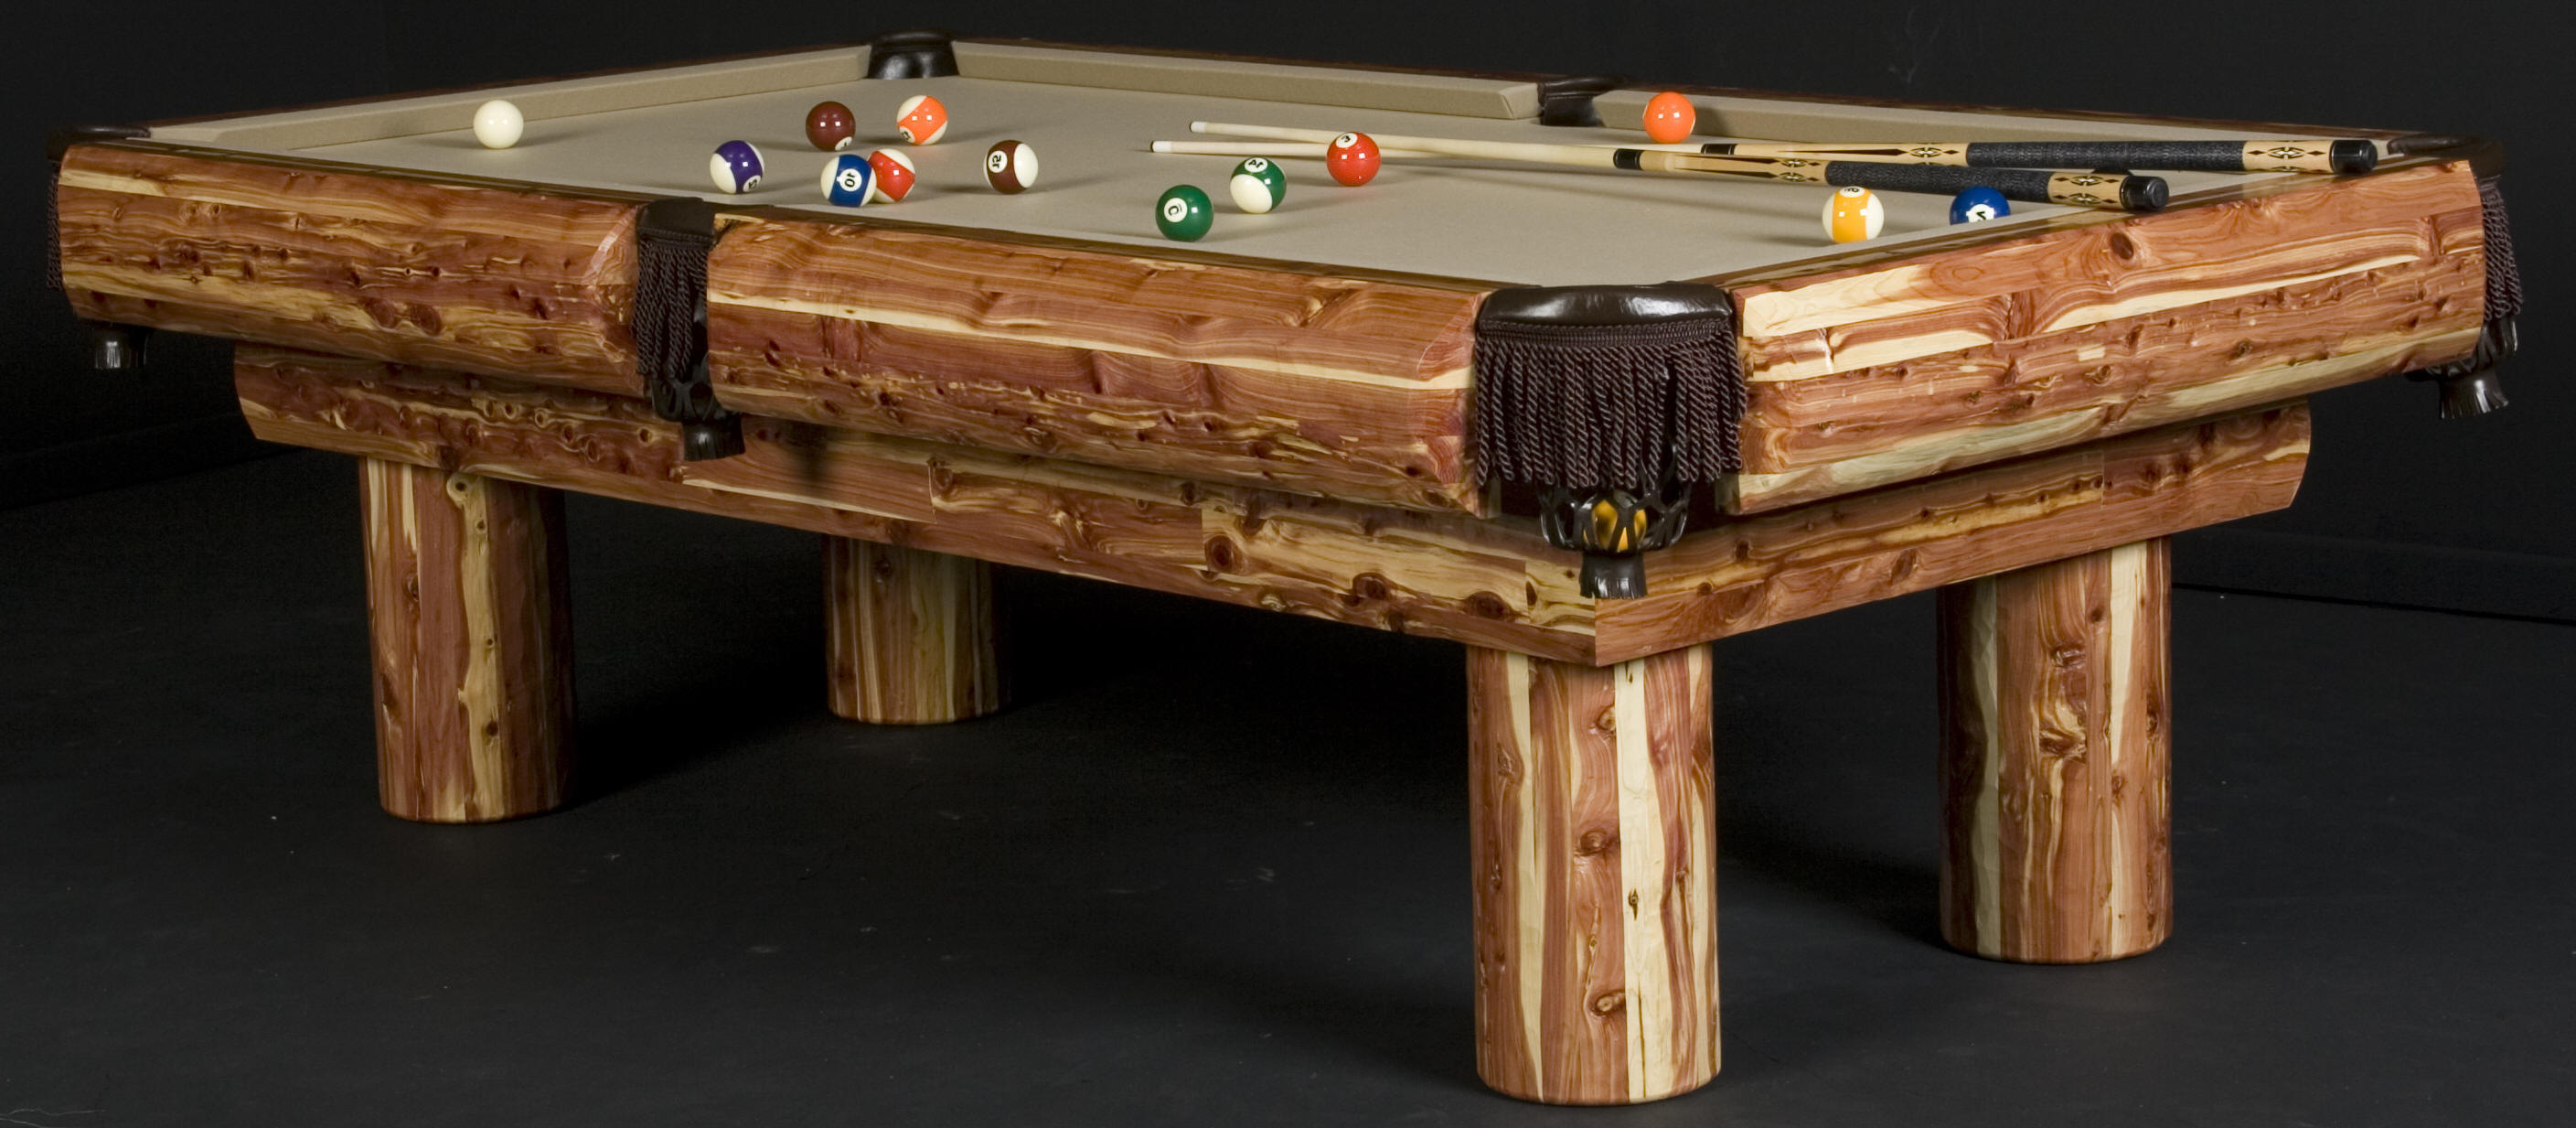 Wonderful unique pool table design homesfeed for Interesting table tops